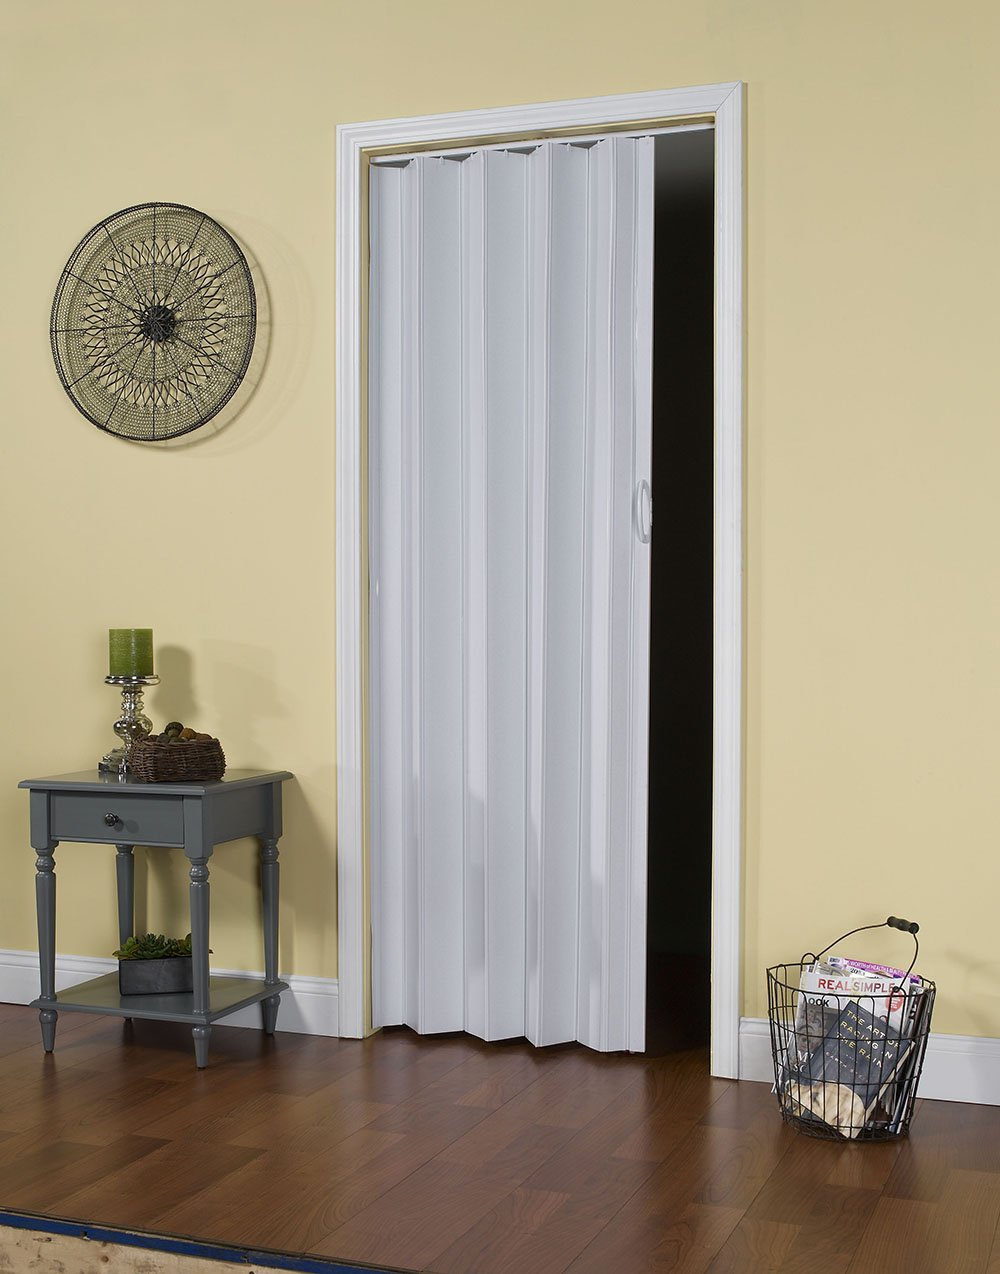 Spectrum CT3280T Contempra 24'' to 36'' x 80'' Accordion Folding Door, Sand White